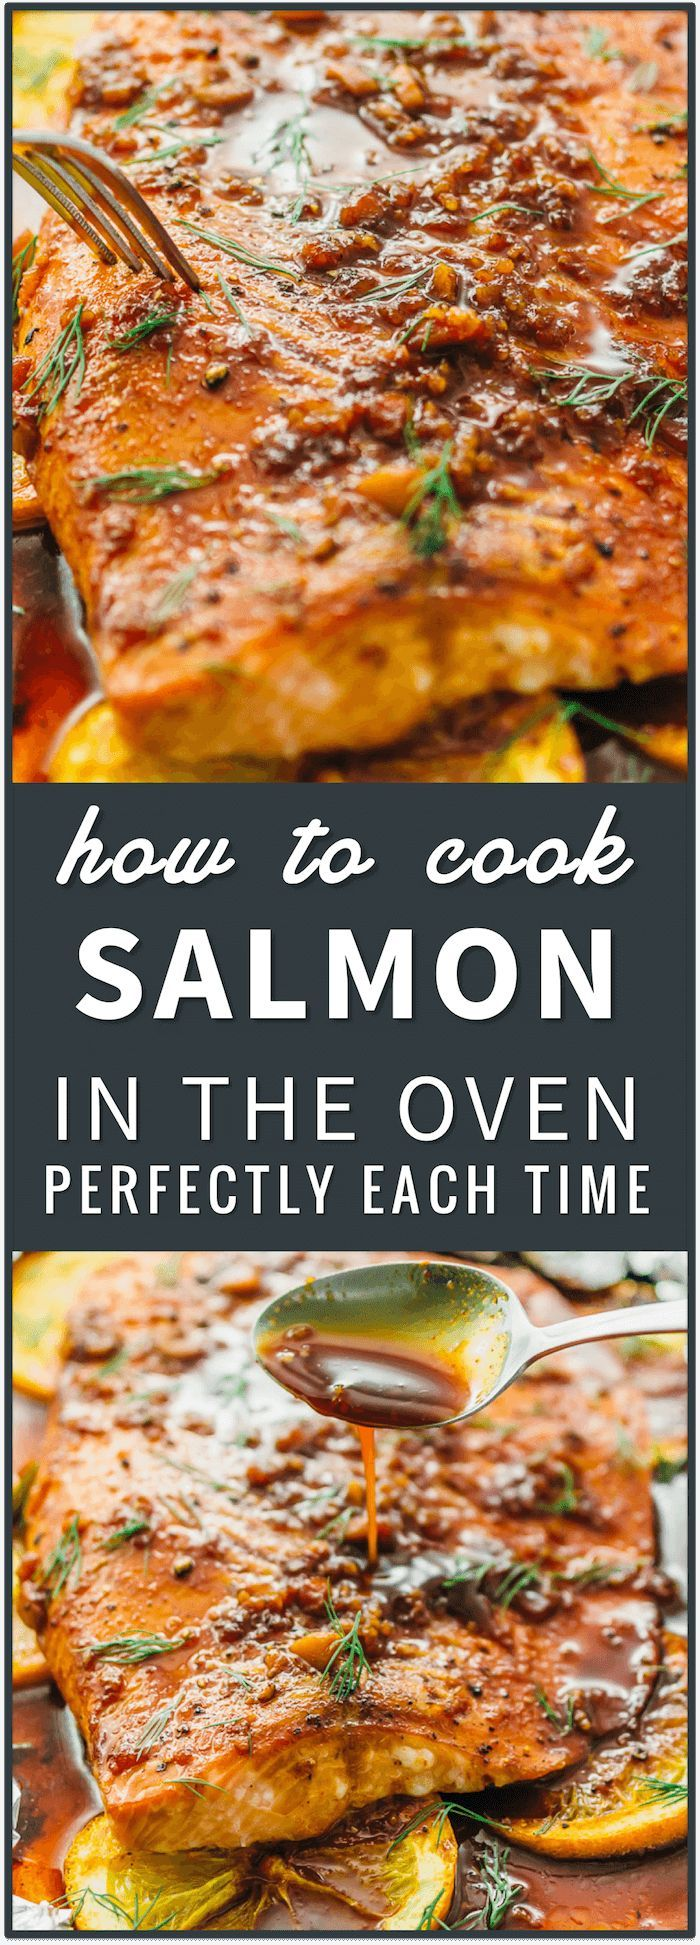 Learn how to cook salmon in the oven perfectly every time using this easy foolproof recipe. in a pan, on the grill, in foil, frozen salmon, baked, pan seared, best, patties, healthy, salad, dinner, ho (Easy Baking Salmon)